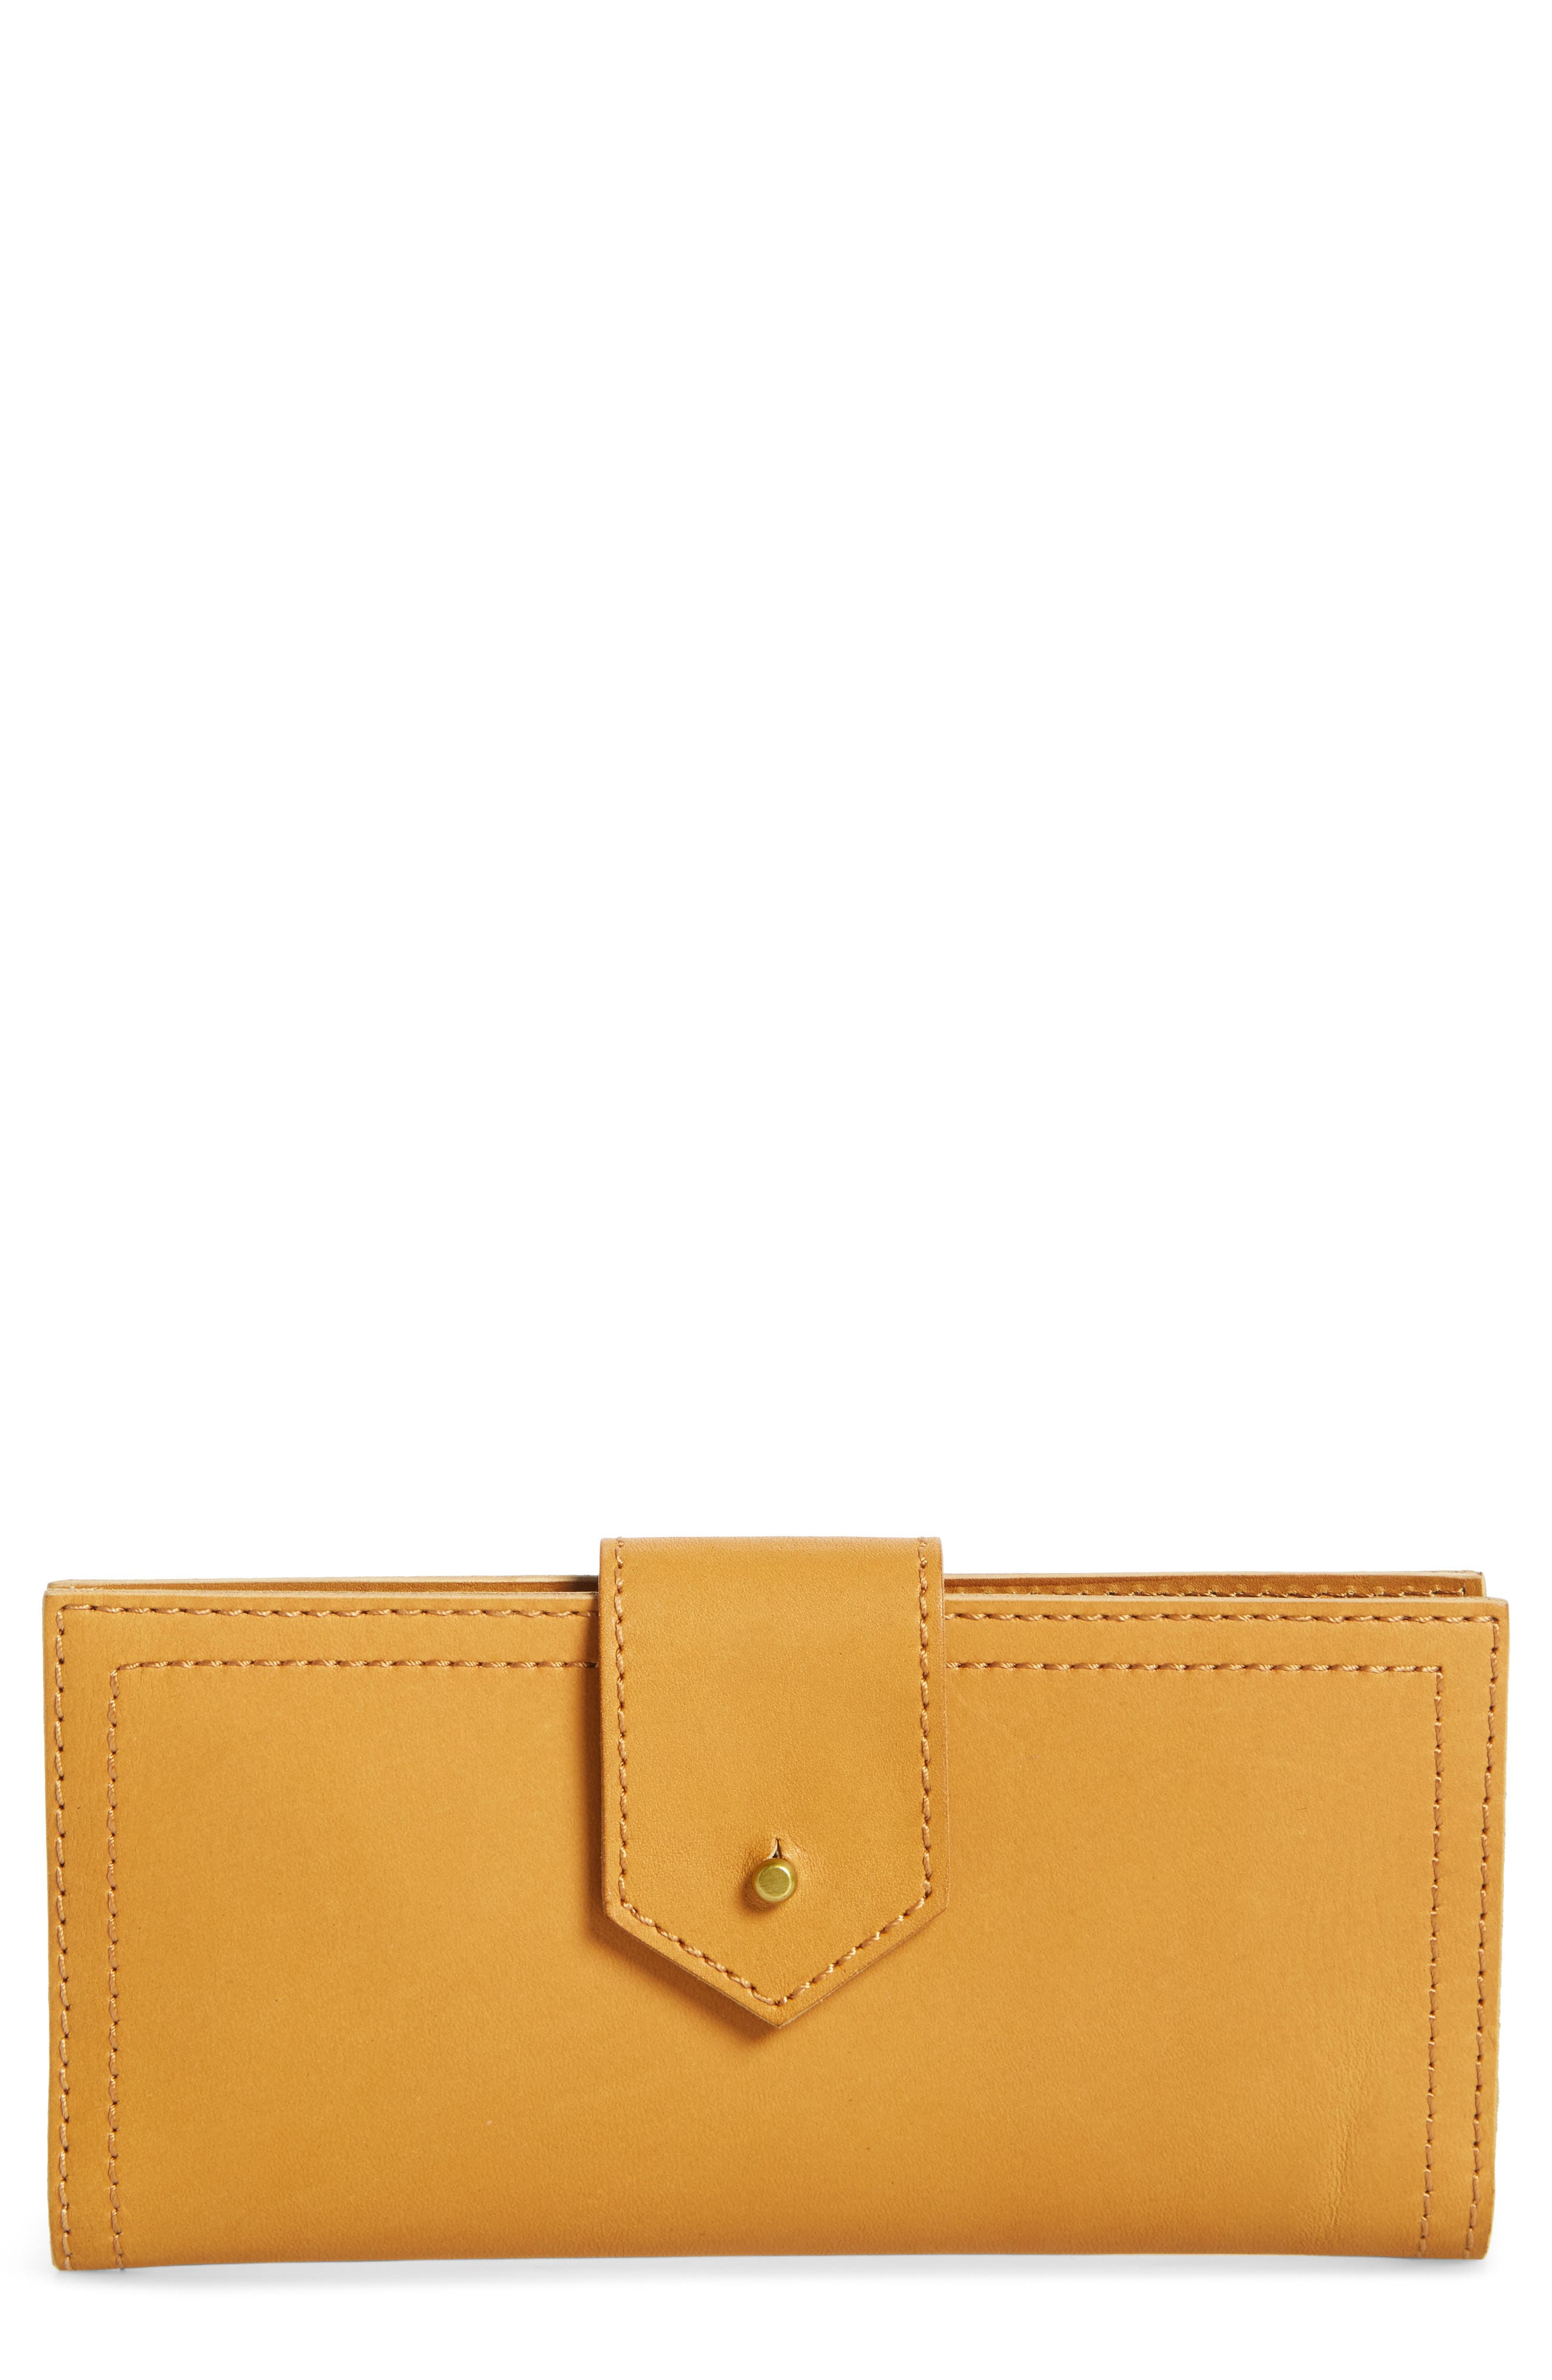 The Post Leather Wallet,                             Main thumbnail 1, color,                             200